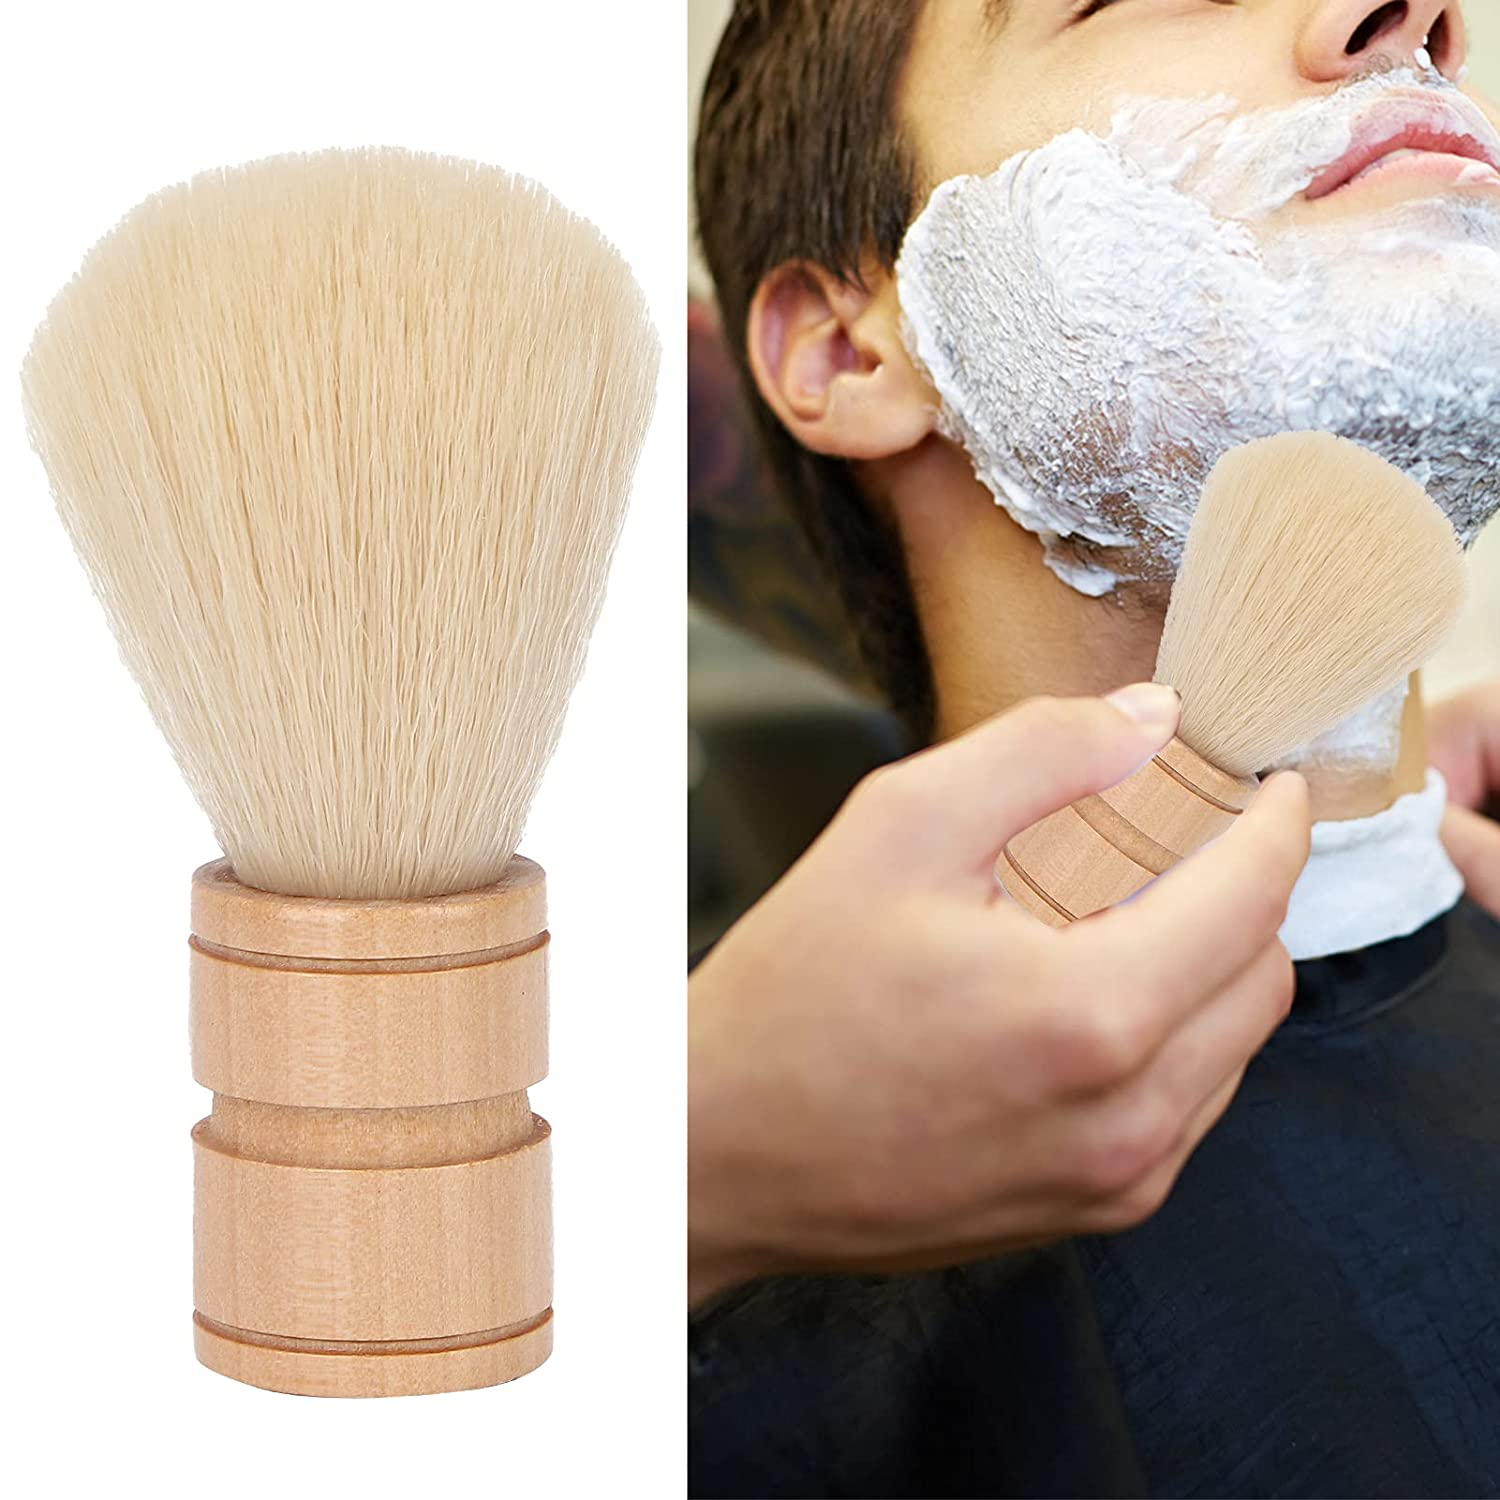 Hair Shave Brush Professional Distributing 5 ☆ popular Foam Weight Sh Light New product